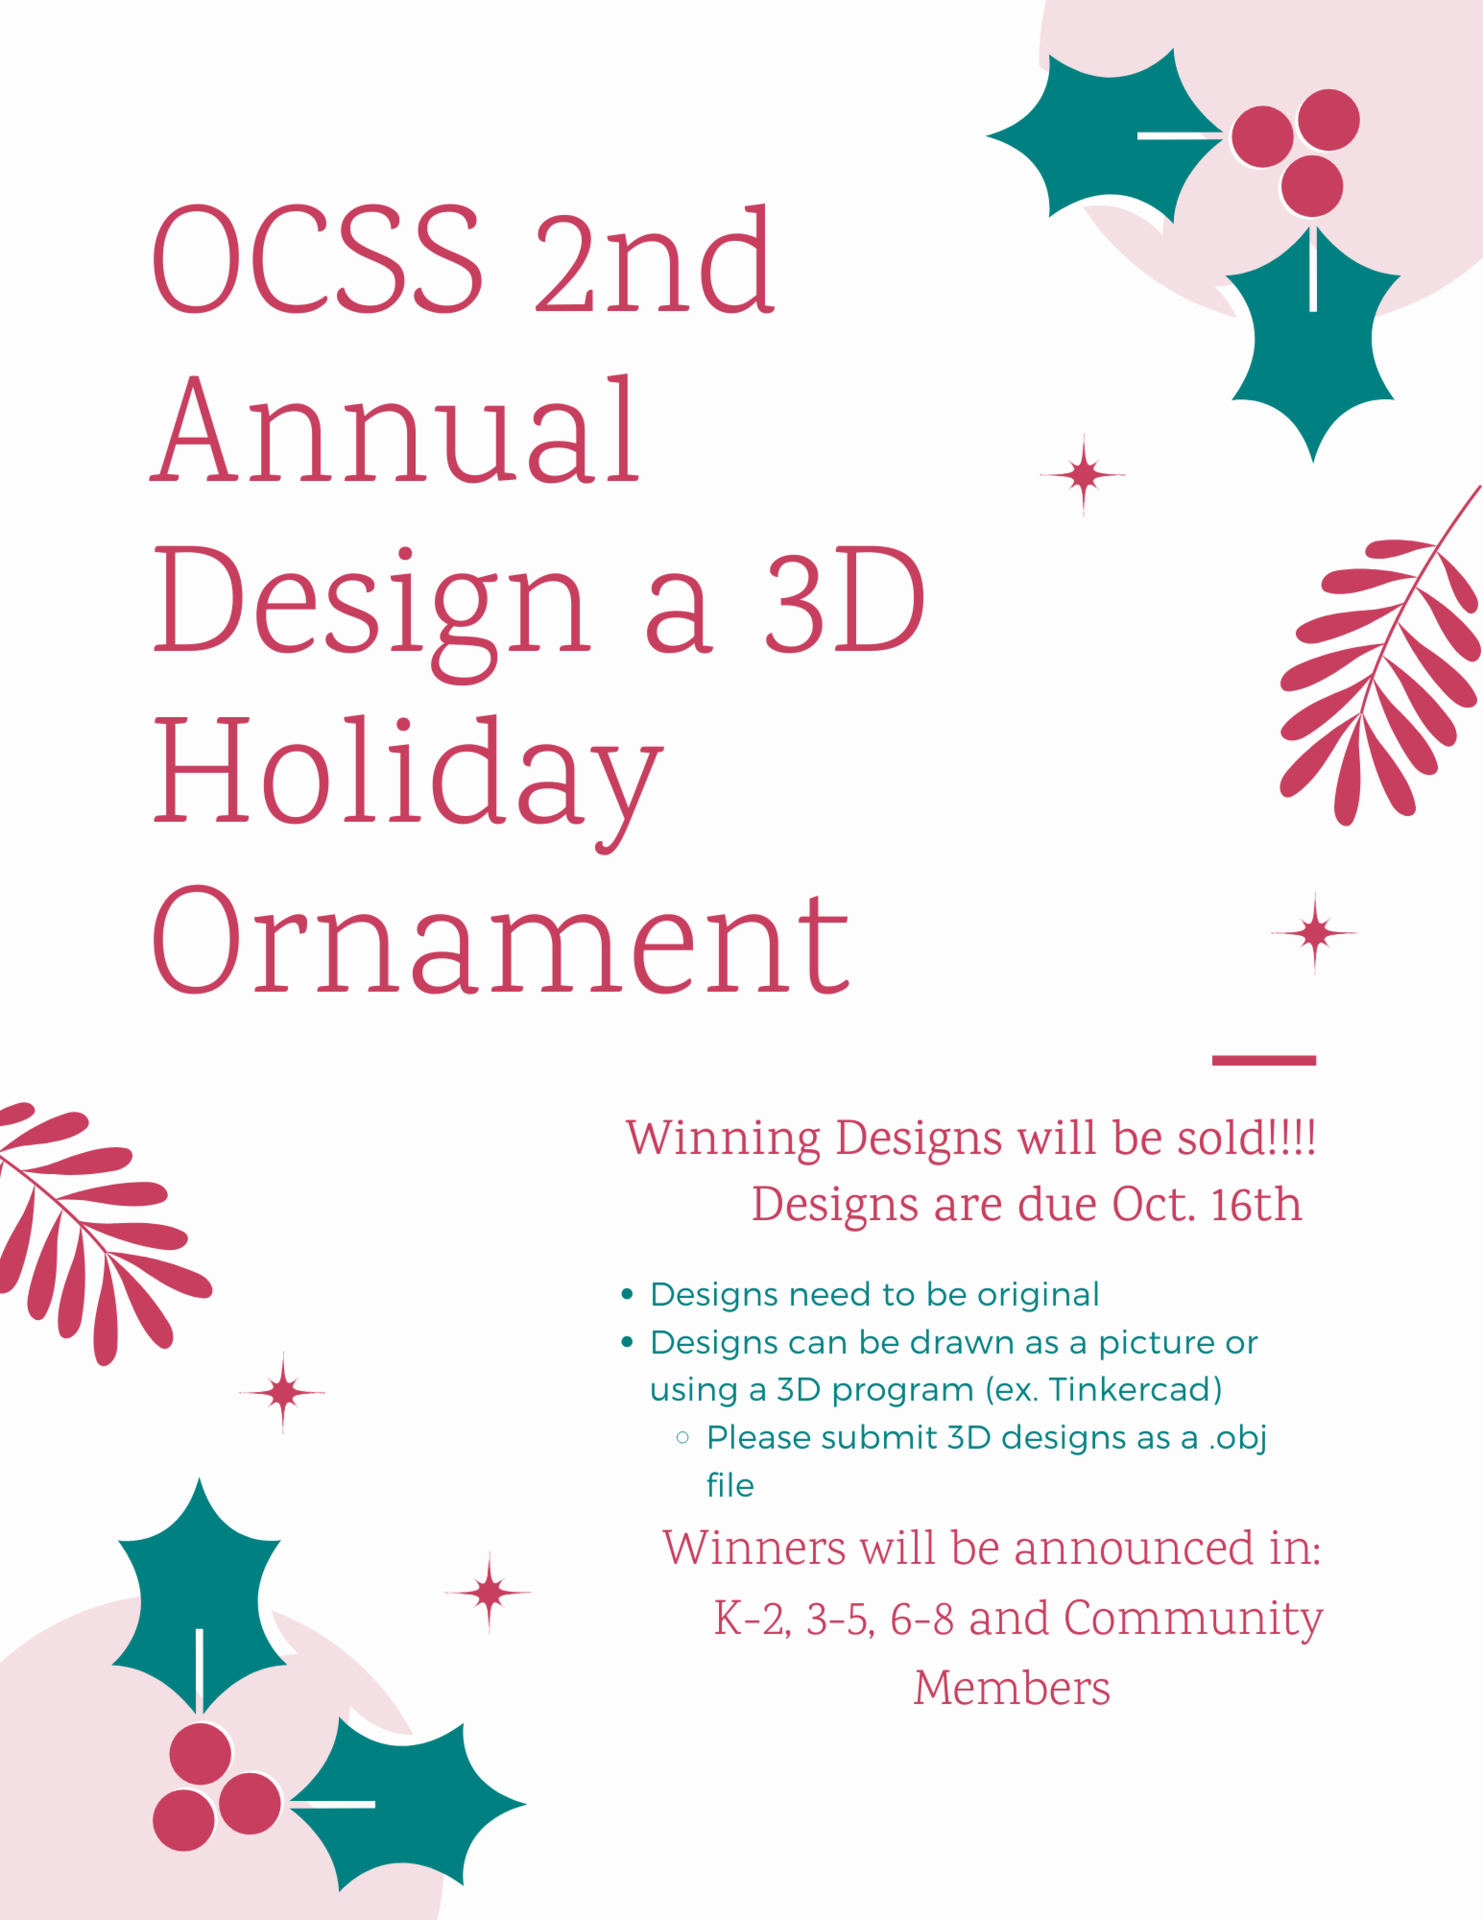 Ornament flyer